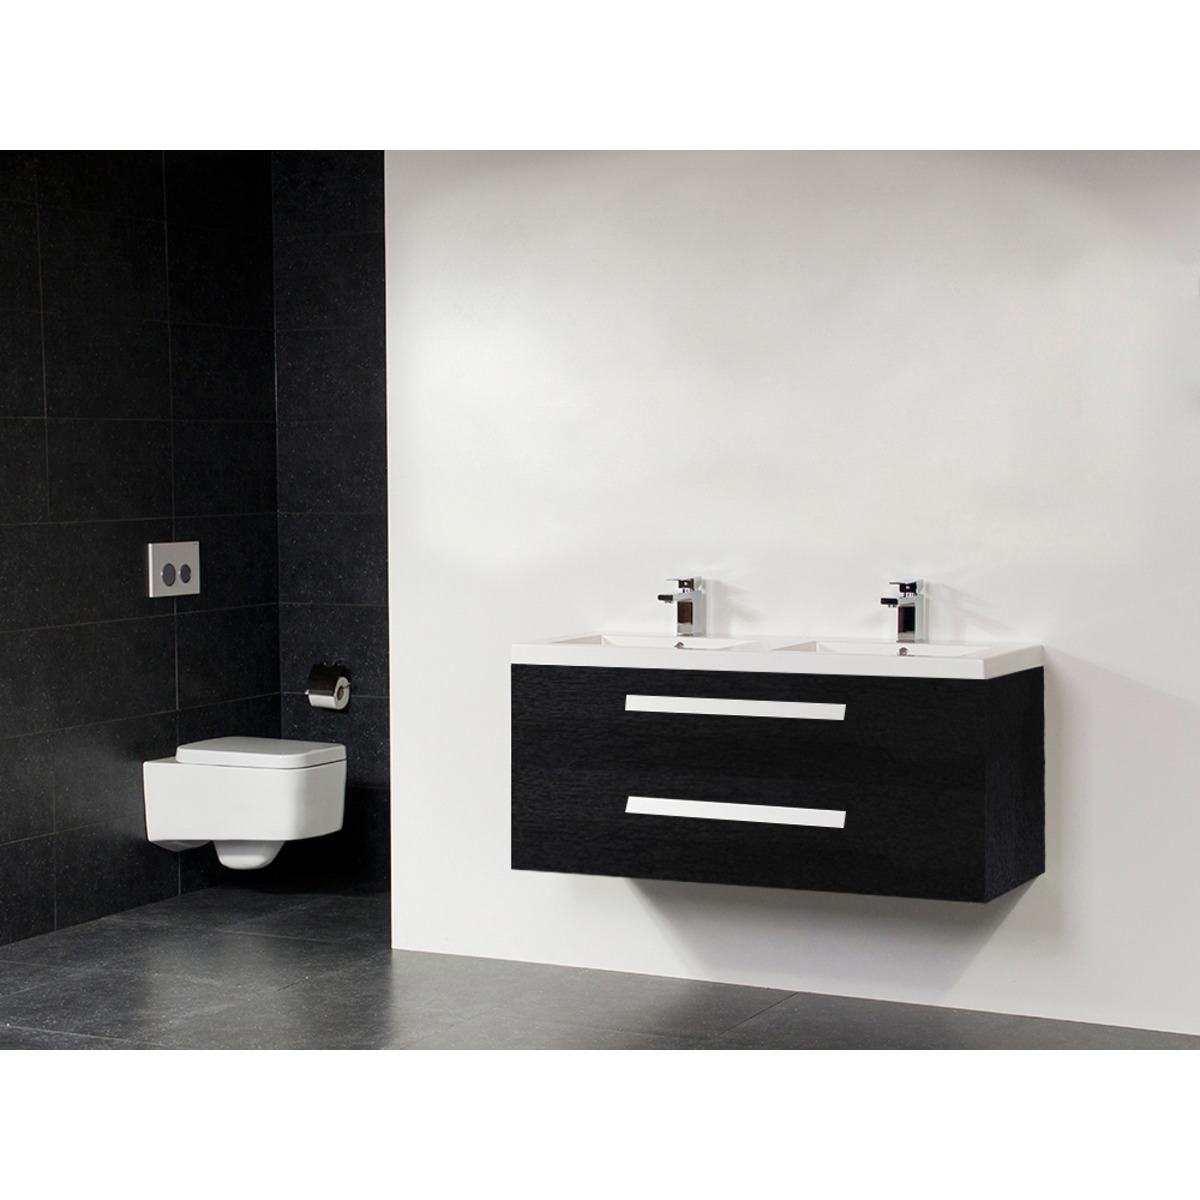 saniclass foggia meuble salle de bain 120cm 2 vasques et 2 trous pour robinetterie black wood. Black Bedroom Furniture Sets. Home Design Ideas